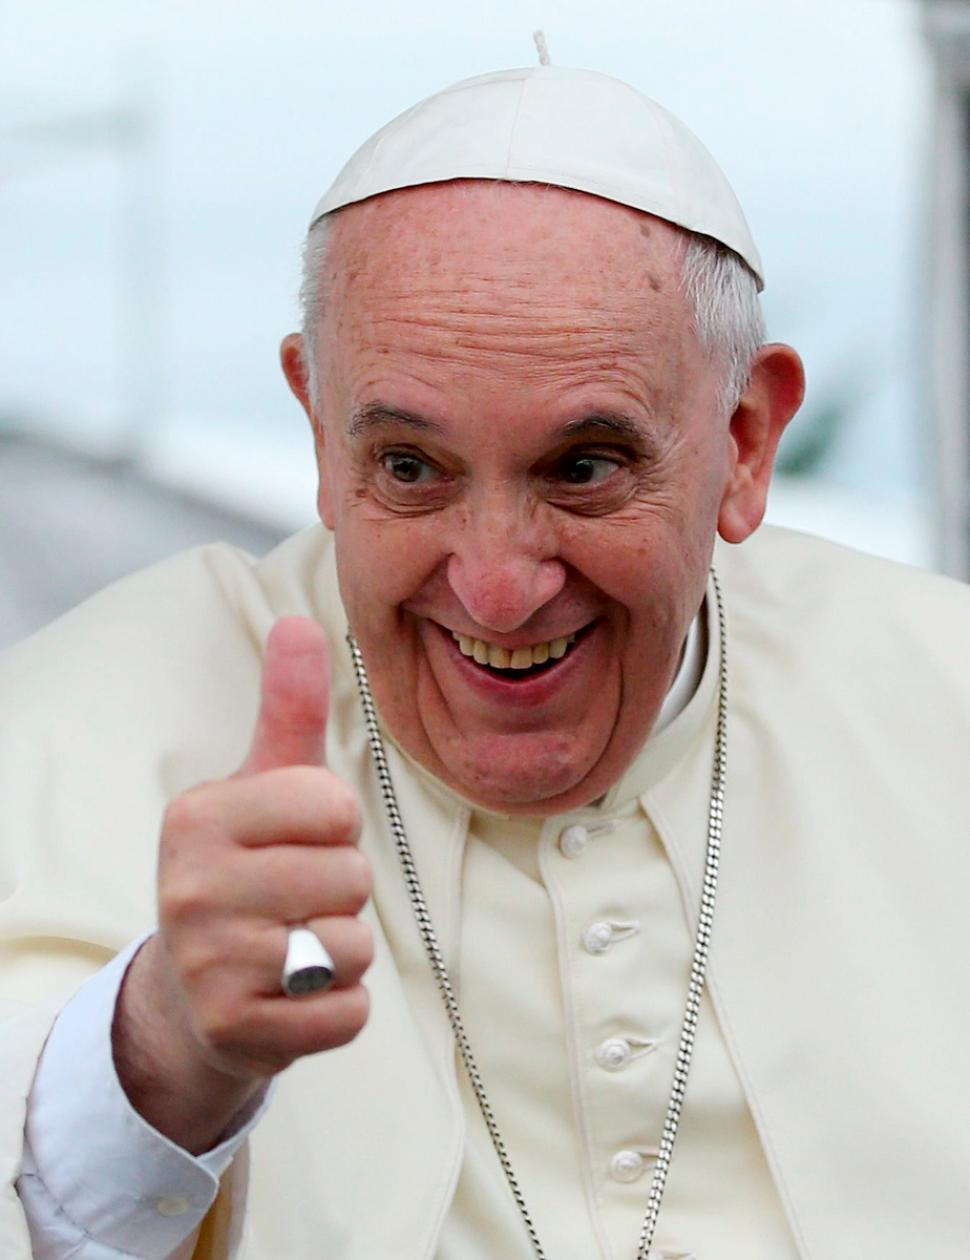 south-korea-pope-francis-visit.jpg